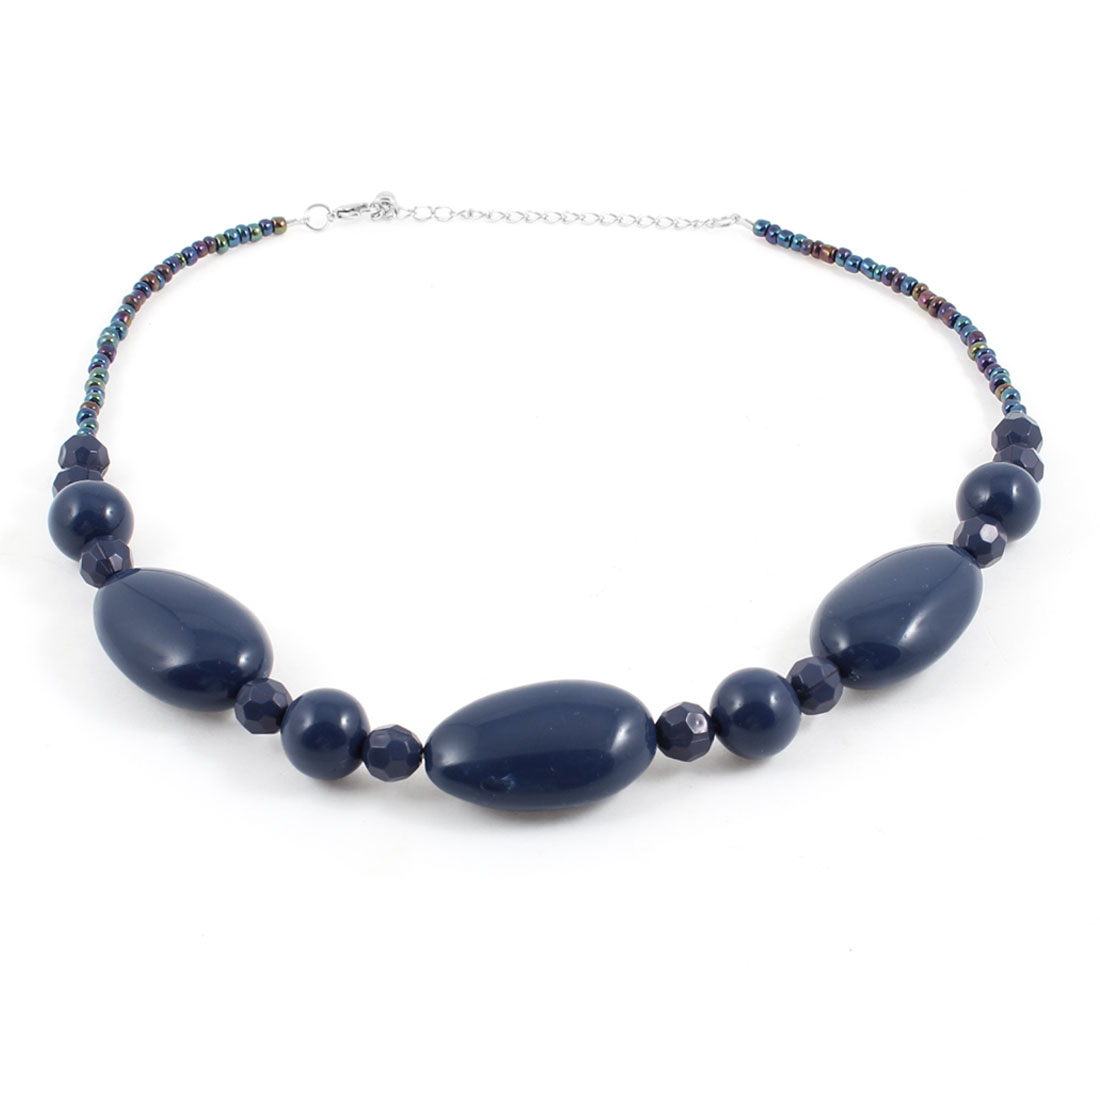 Plastic Dark Blue Crystal Decor Lobster Clasp Necklace for Lady